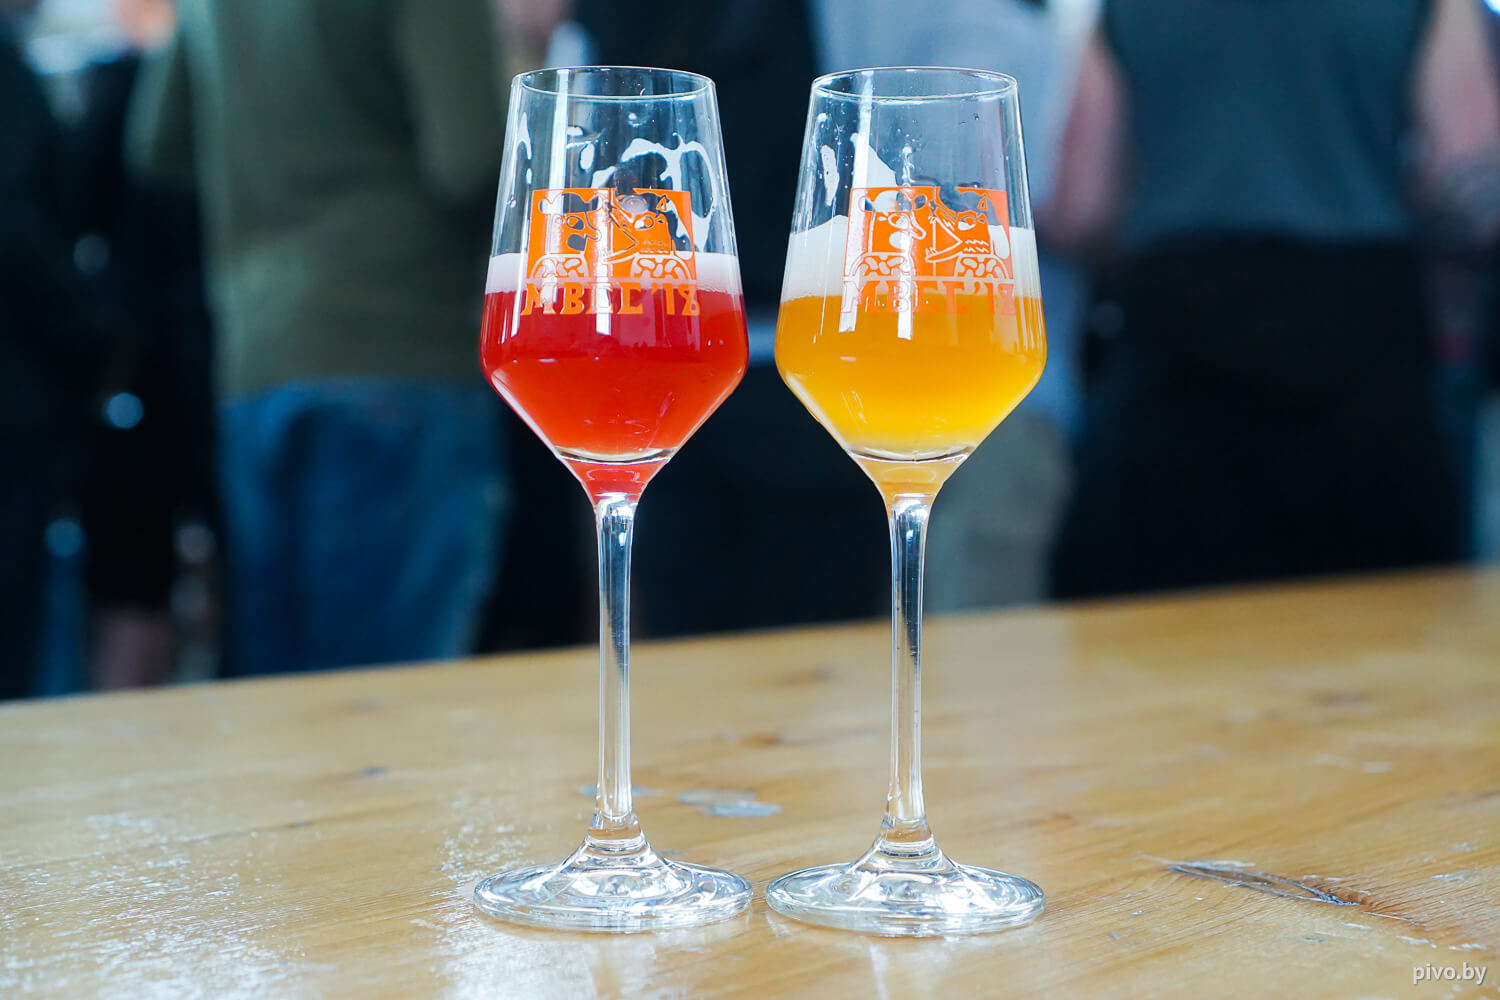 Mikkeller Beer Celebration Copenhagen 2018